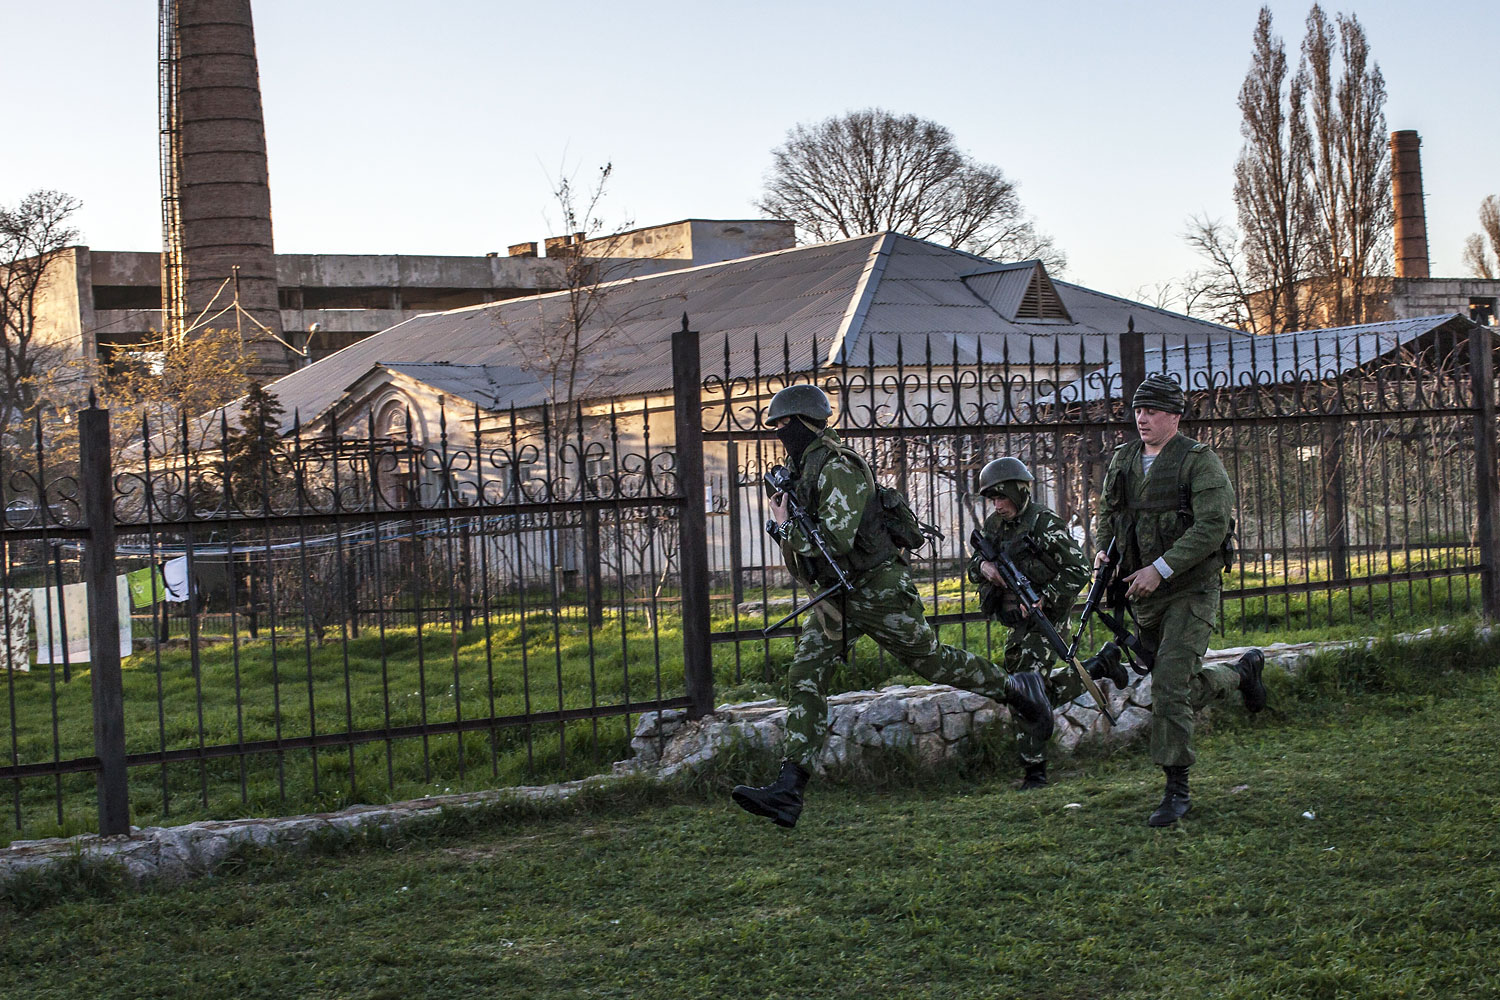 Russian forces storm a Ukrainian military base in the village of Belbek, Crimea, March 22, 2014.